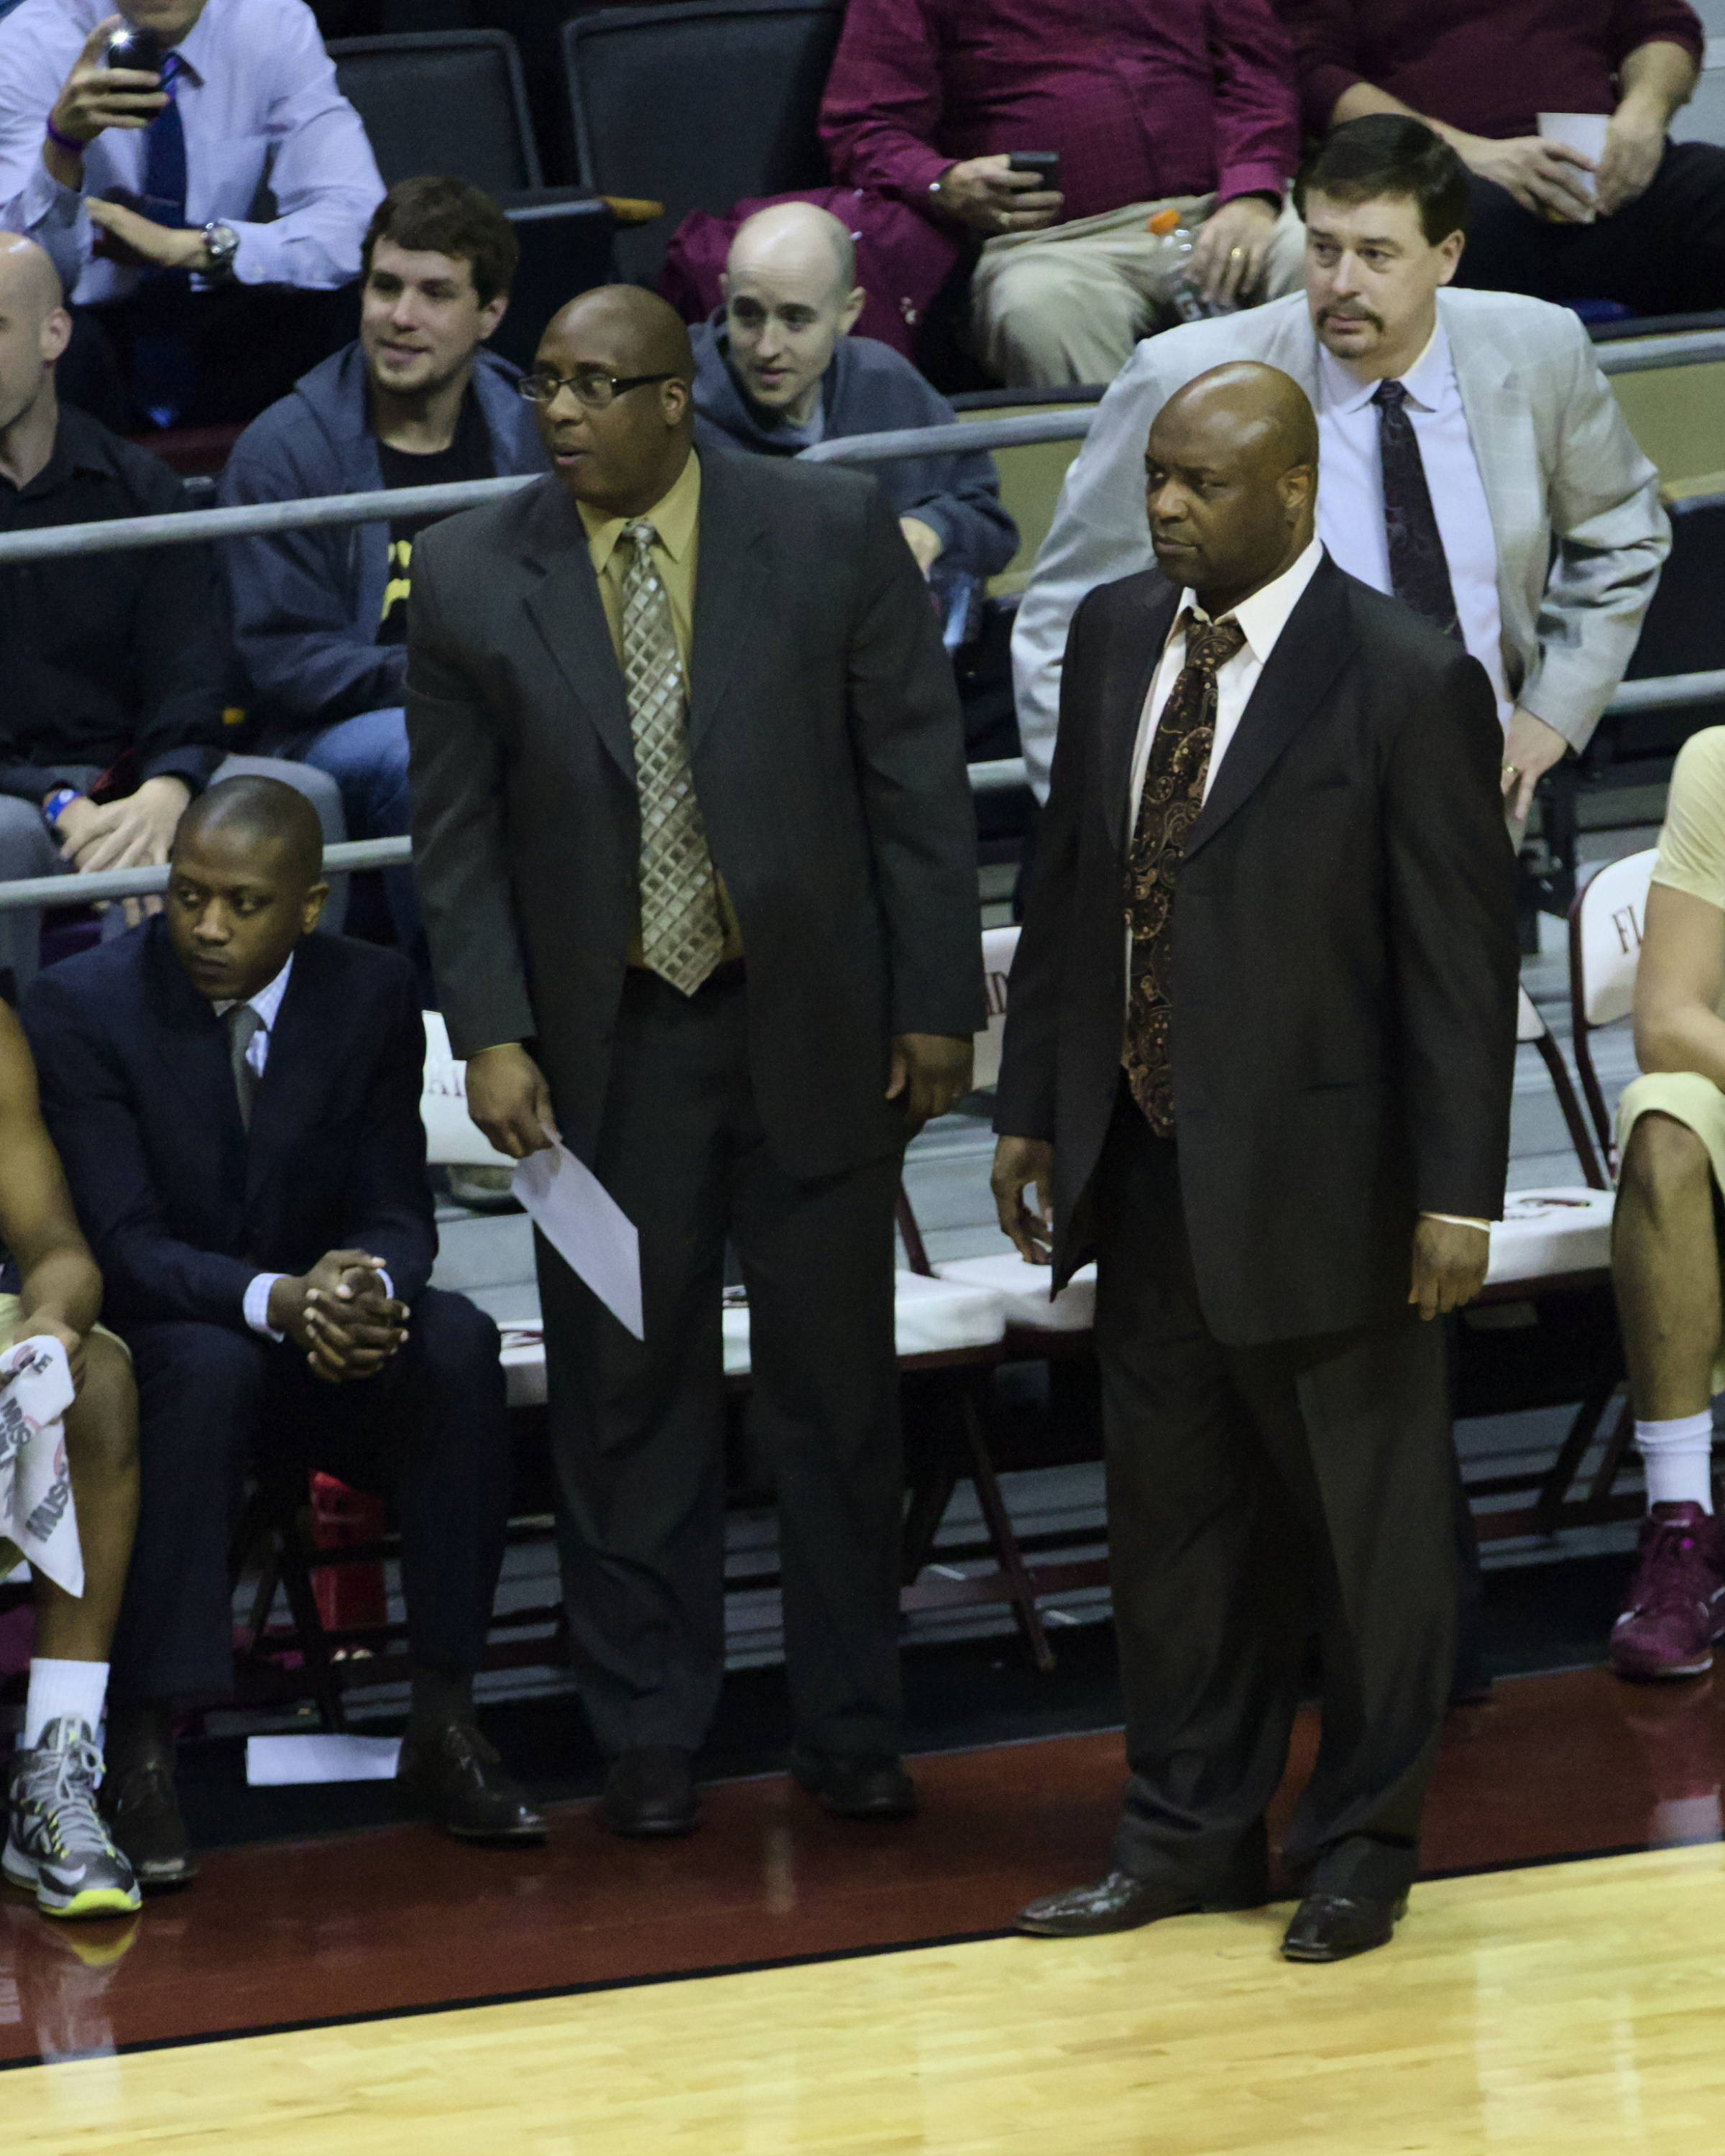 FSU Coaching Staff, Assistant Coaches Dennis Gates, Corey Williams, Head Coach Leonard Hamilton, Associate Head Coach Stan Jones, FSU vs Virginia, 03/07/13. (Photo by Steve Musco)